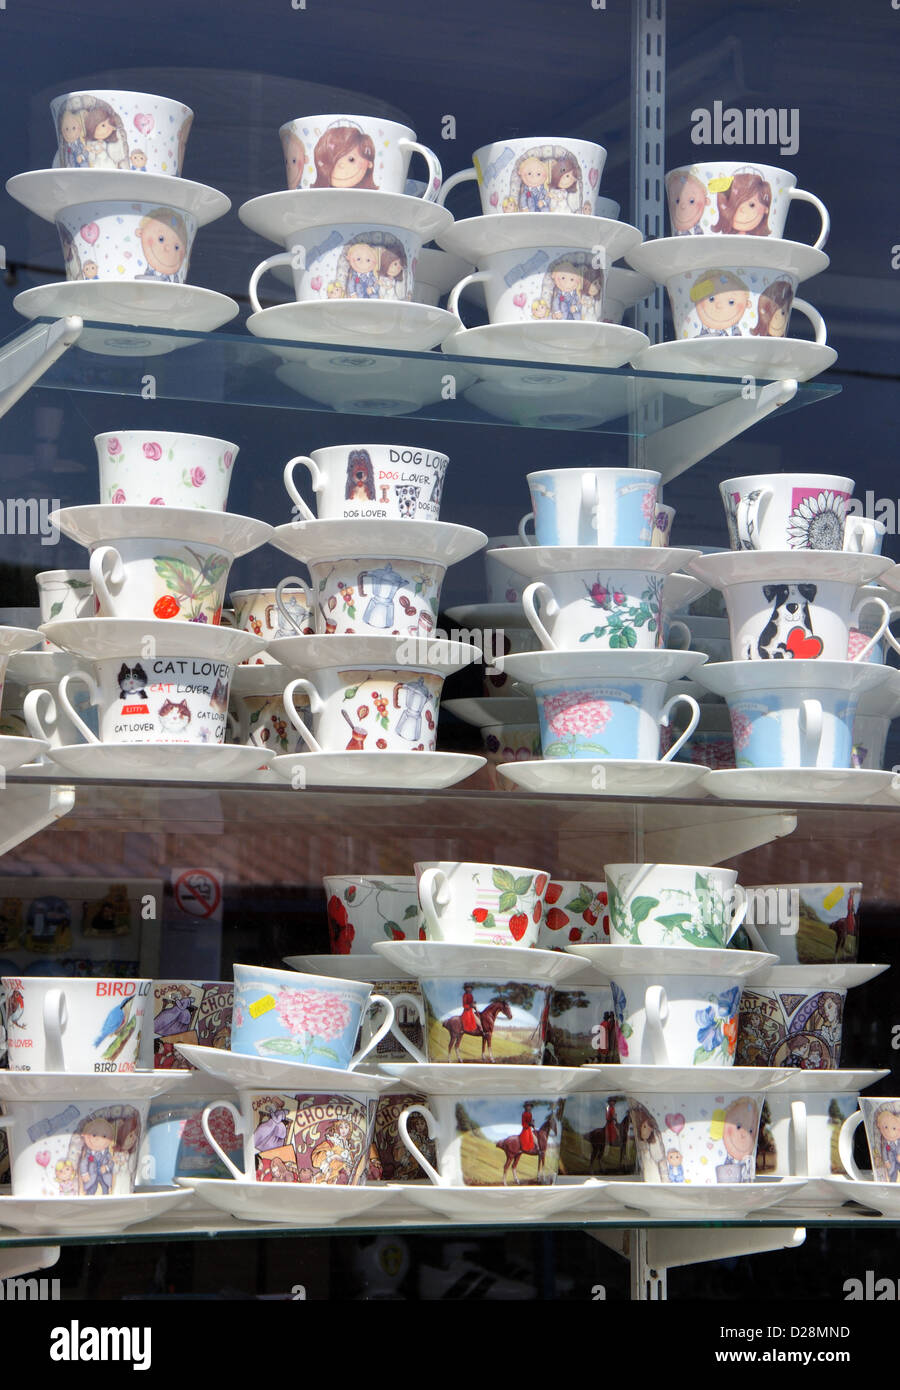 cups and saucers on display in shop window, Whitby, England, UK - Stock Image